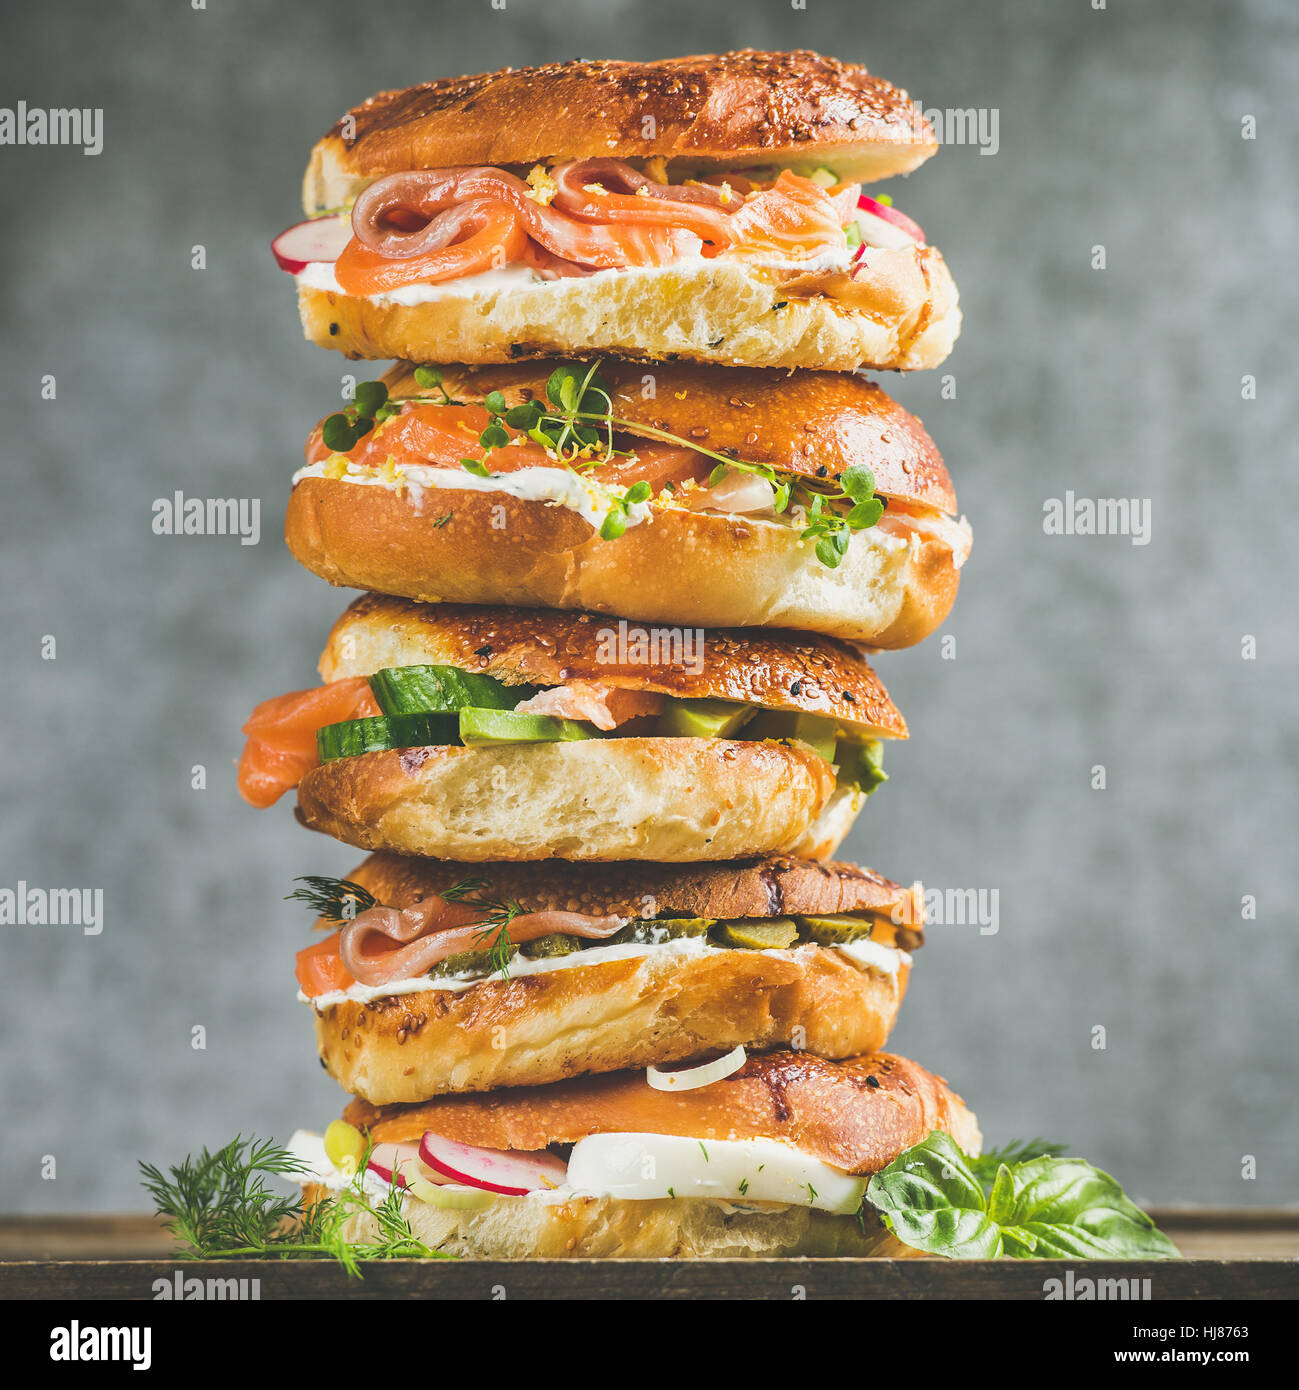 Close-up of Bagels heap with smoked salmon, eggs, vegetables, cream-cheese - Stock Image